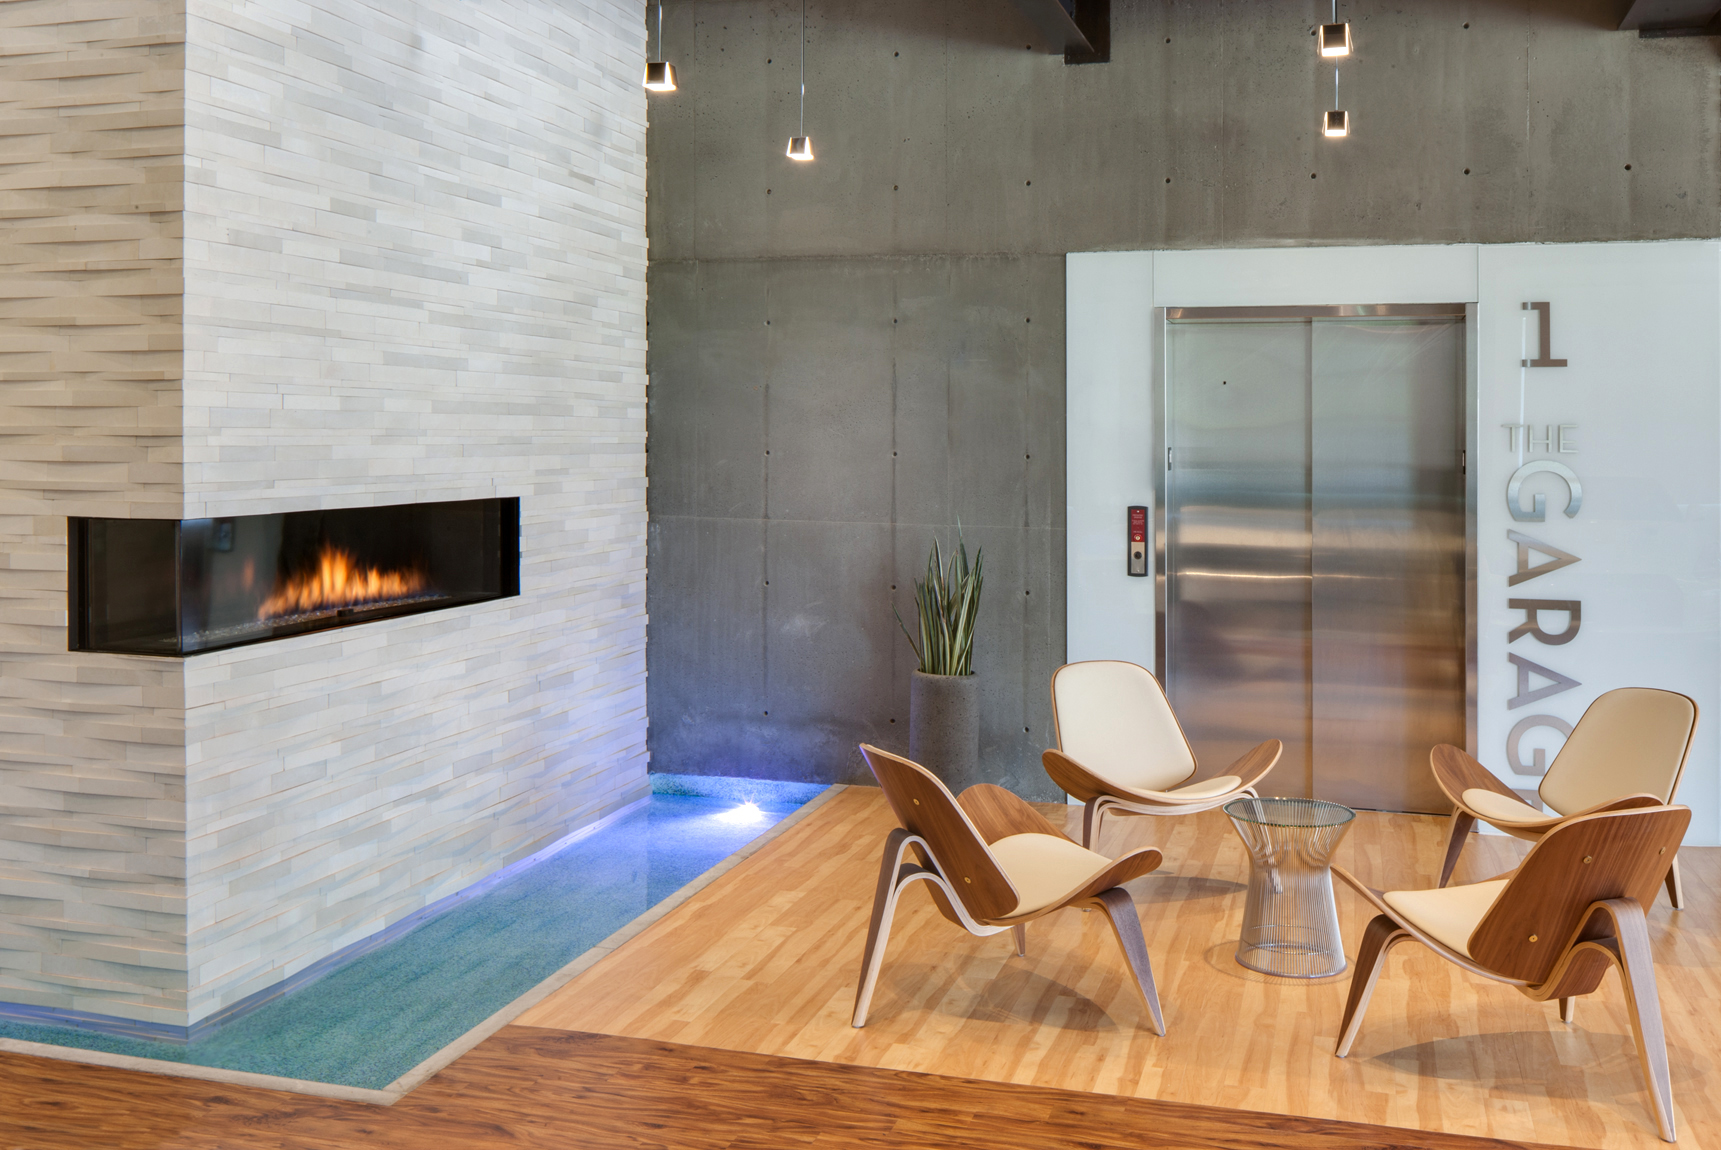 Modern office space with gas fire place, wood furniture, a water feature and a stainless steel elevator.